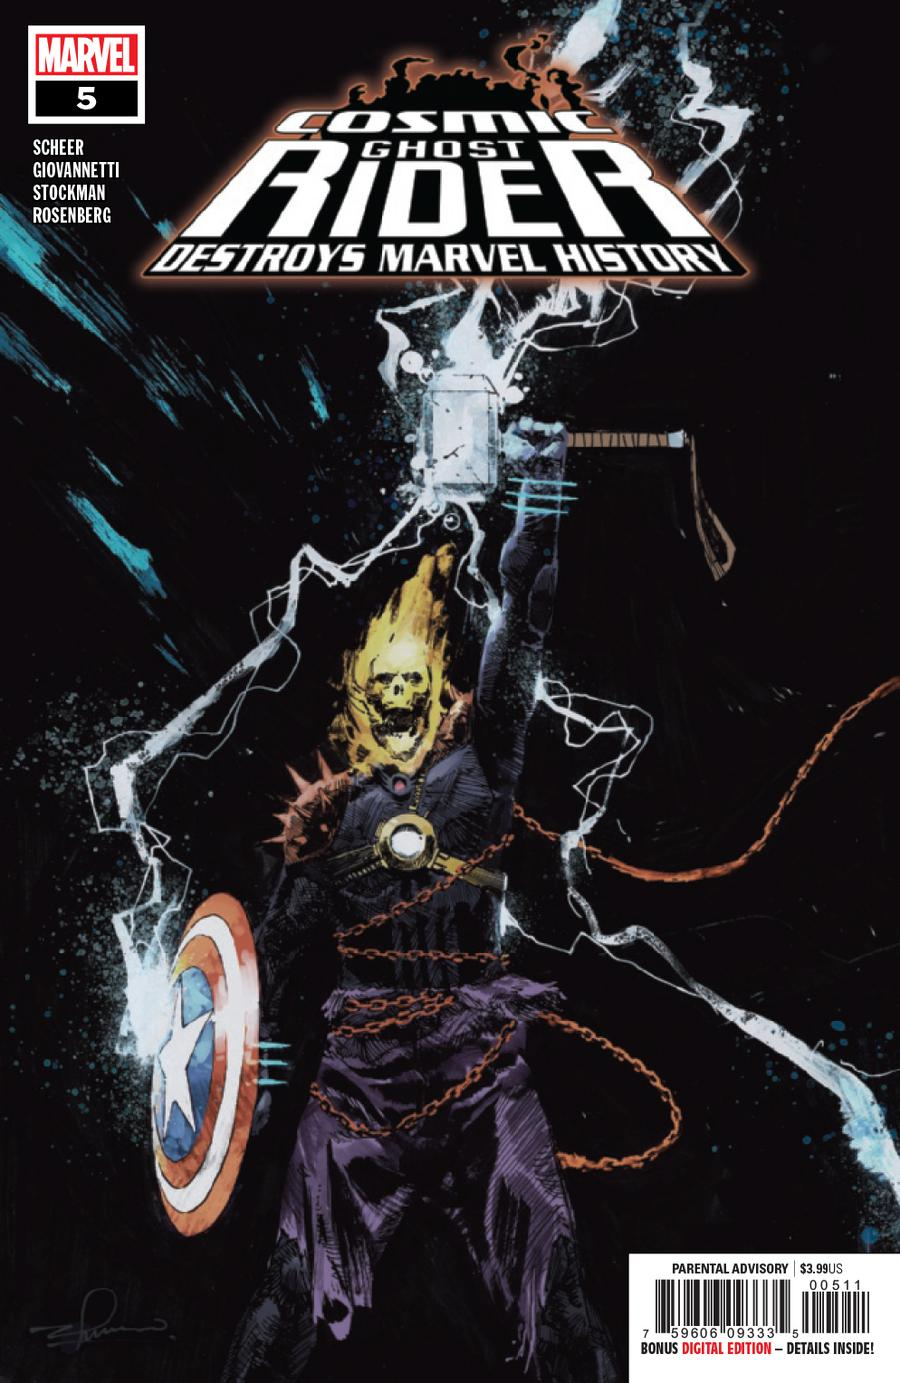 Cosmic Ghost Rider Destroys Marvel History #5 Cover A Regular Gerardo Zaffino Cover